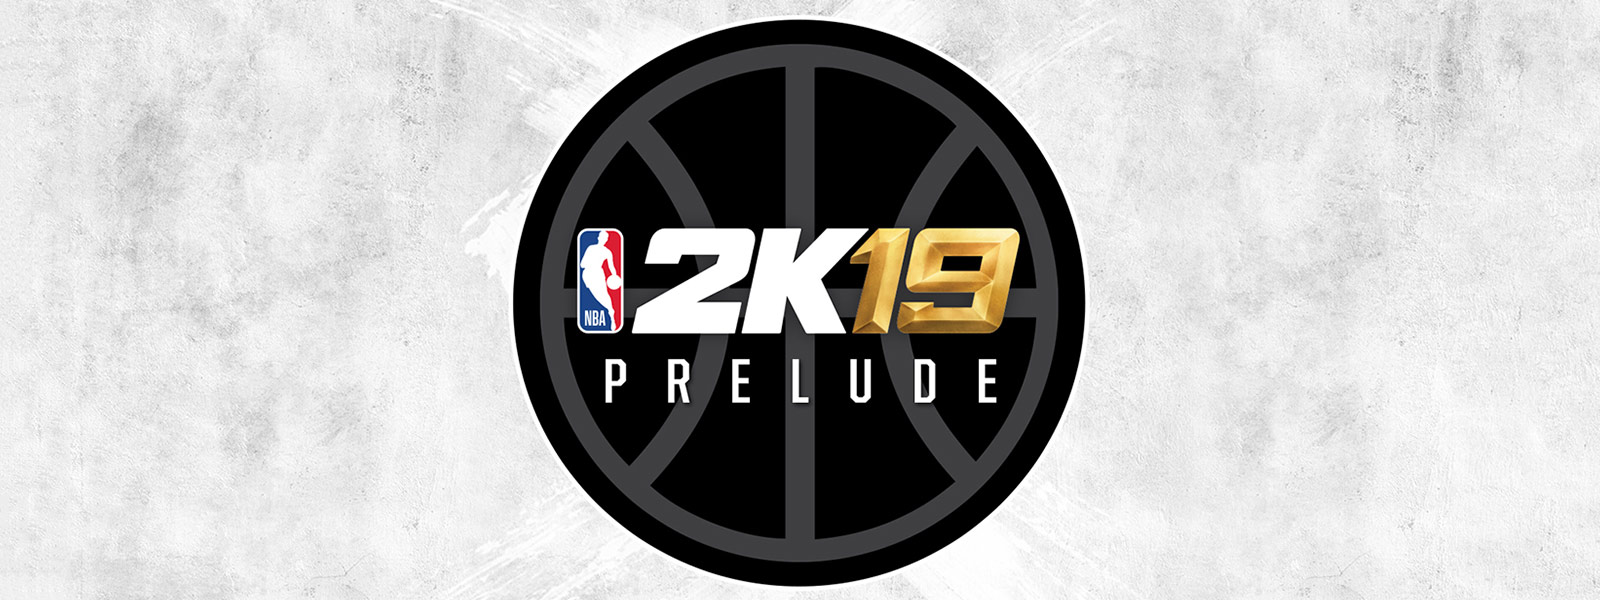 2K19 Prelude text in outline of basketball